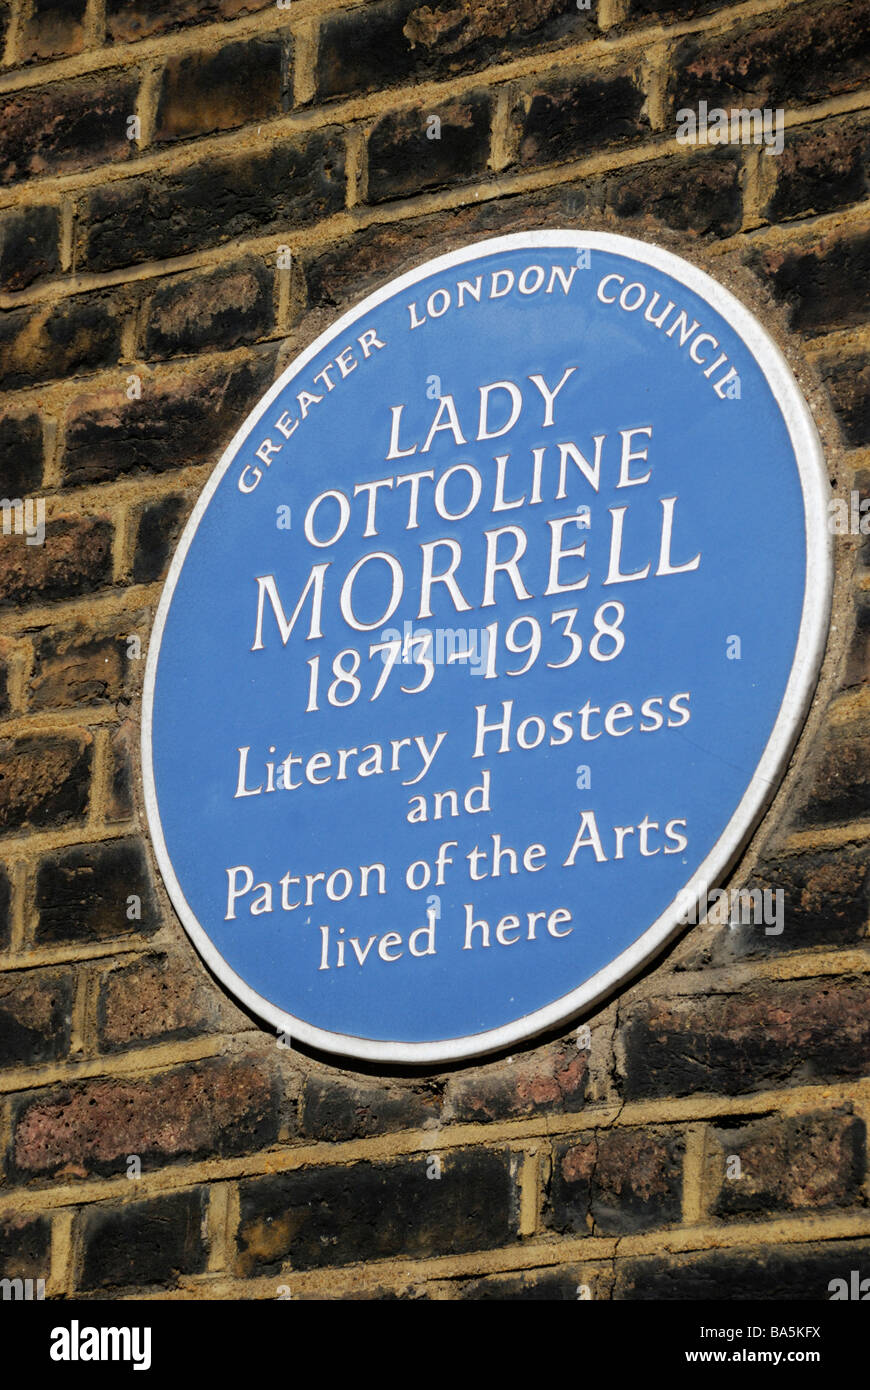 Blue plaque marking the former house of Lady Ottoline Morrell Literary Hostess and patron of the arts in Gower Street - Stock Image